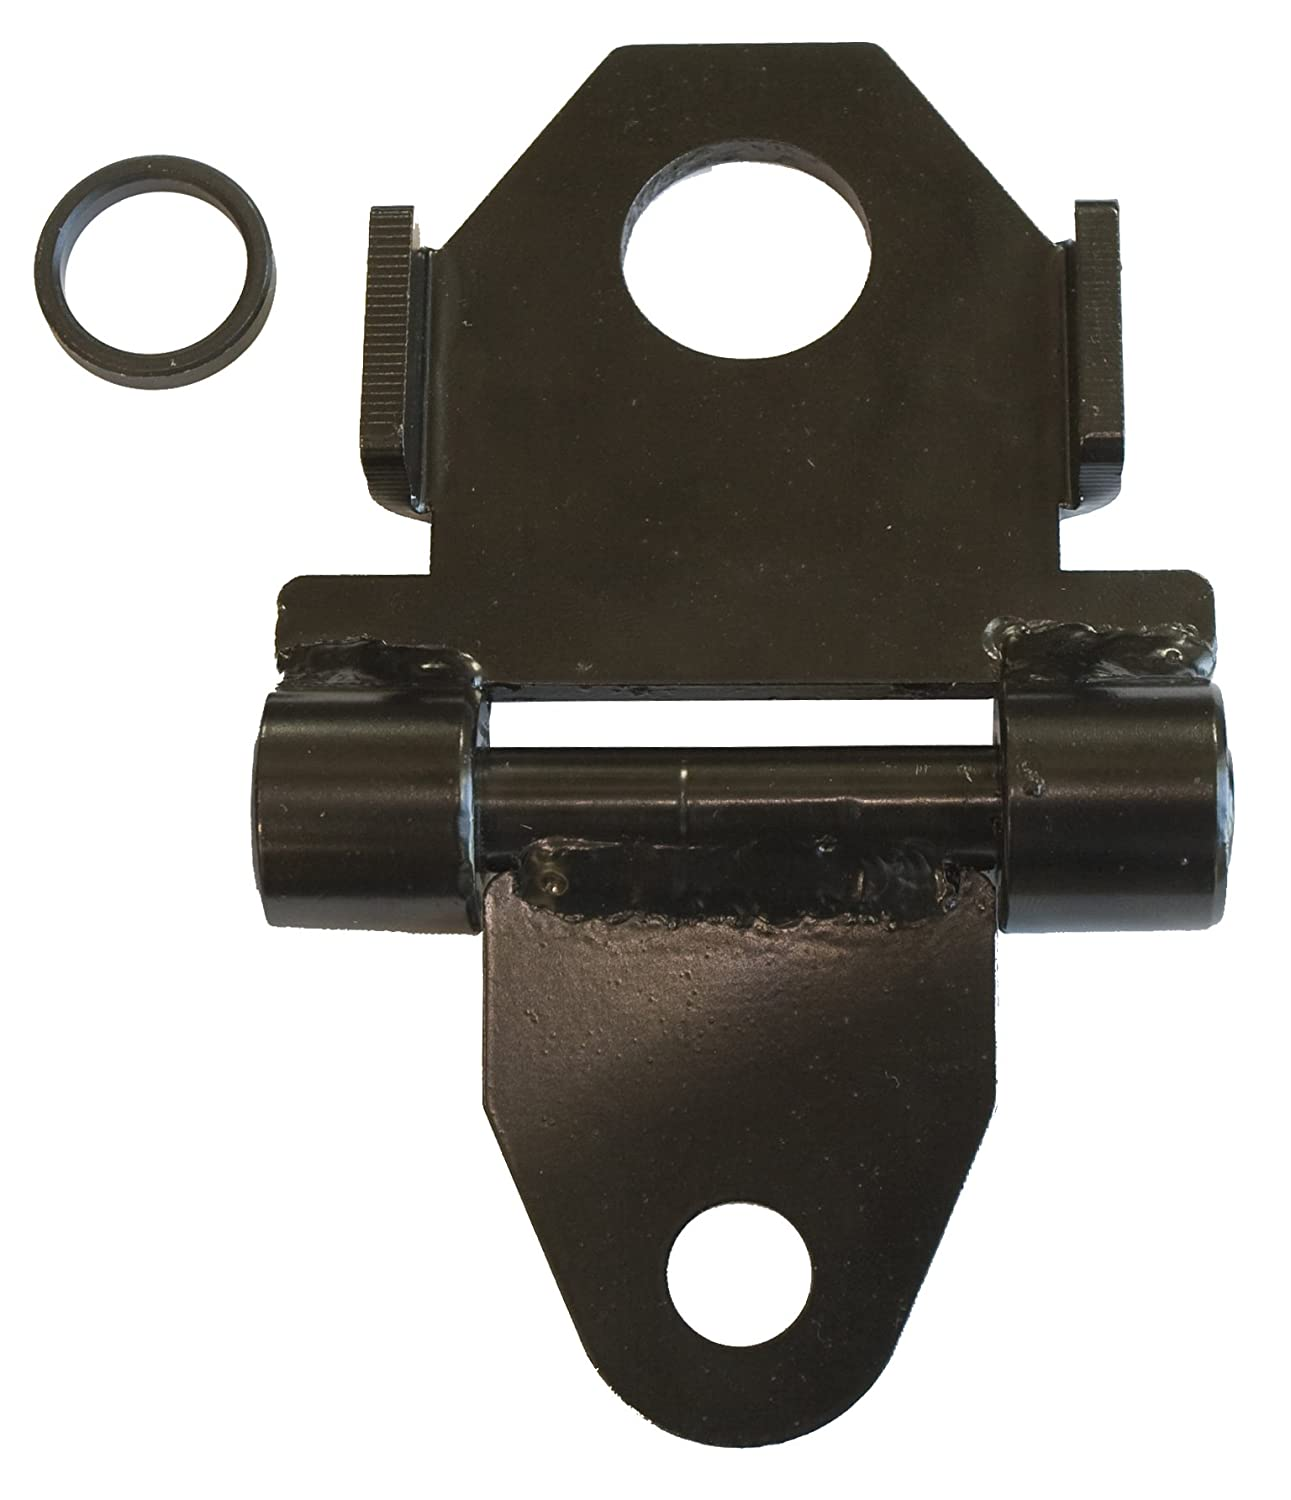 OTTER Flipper Hitch (Receiver Mount Hitch) Otter Outdoor 200948